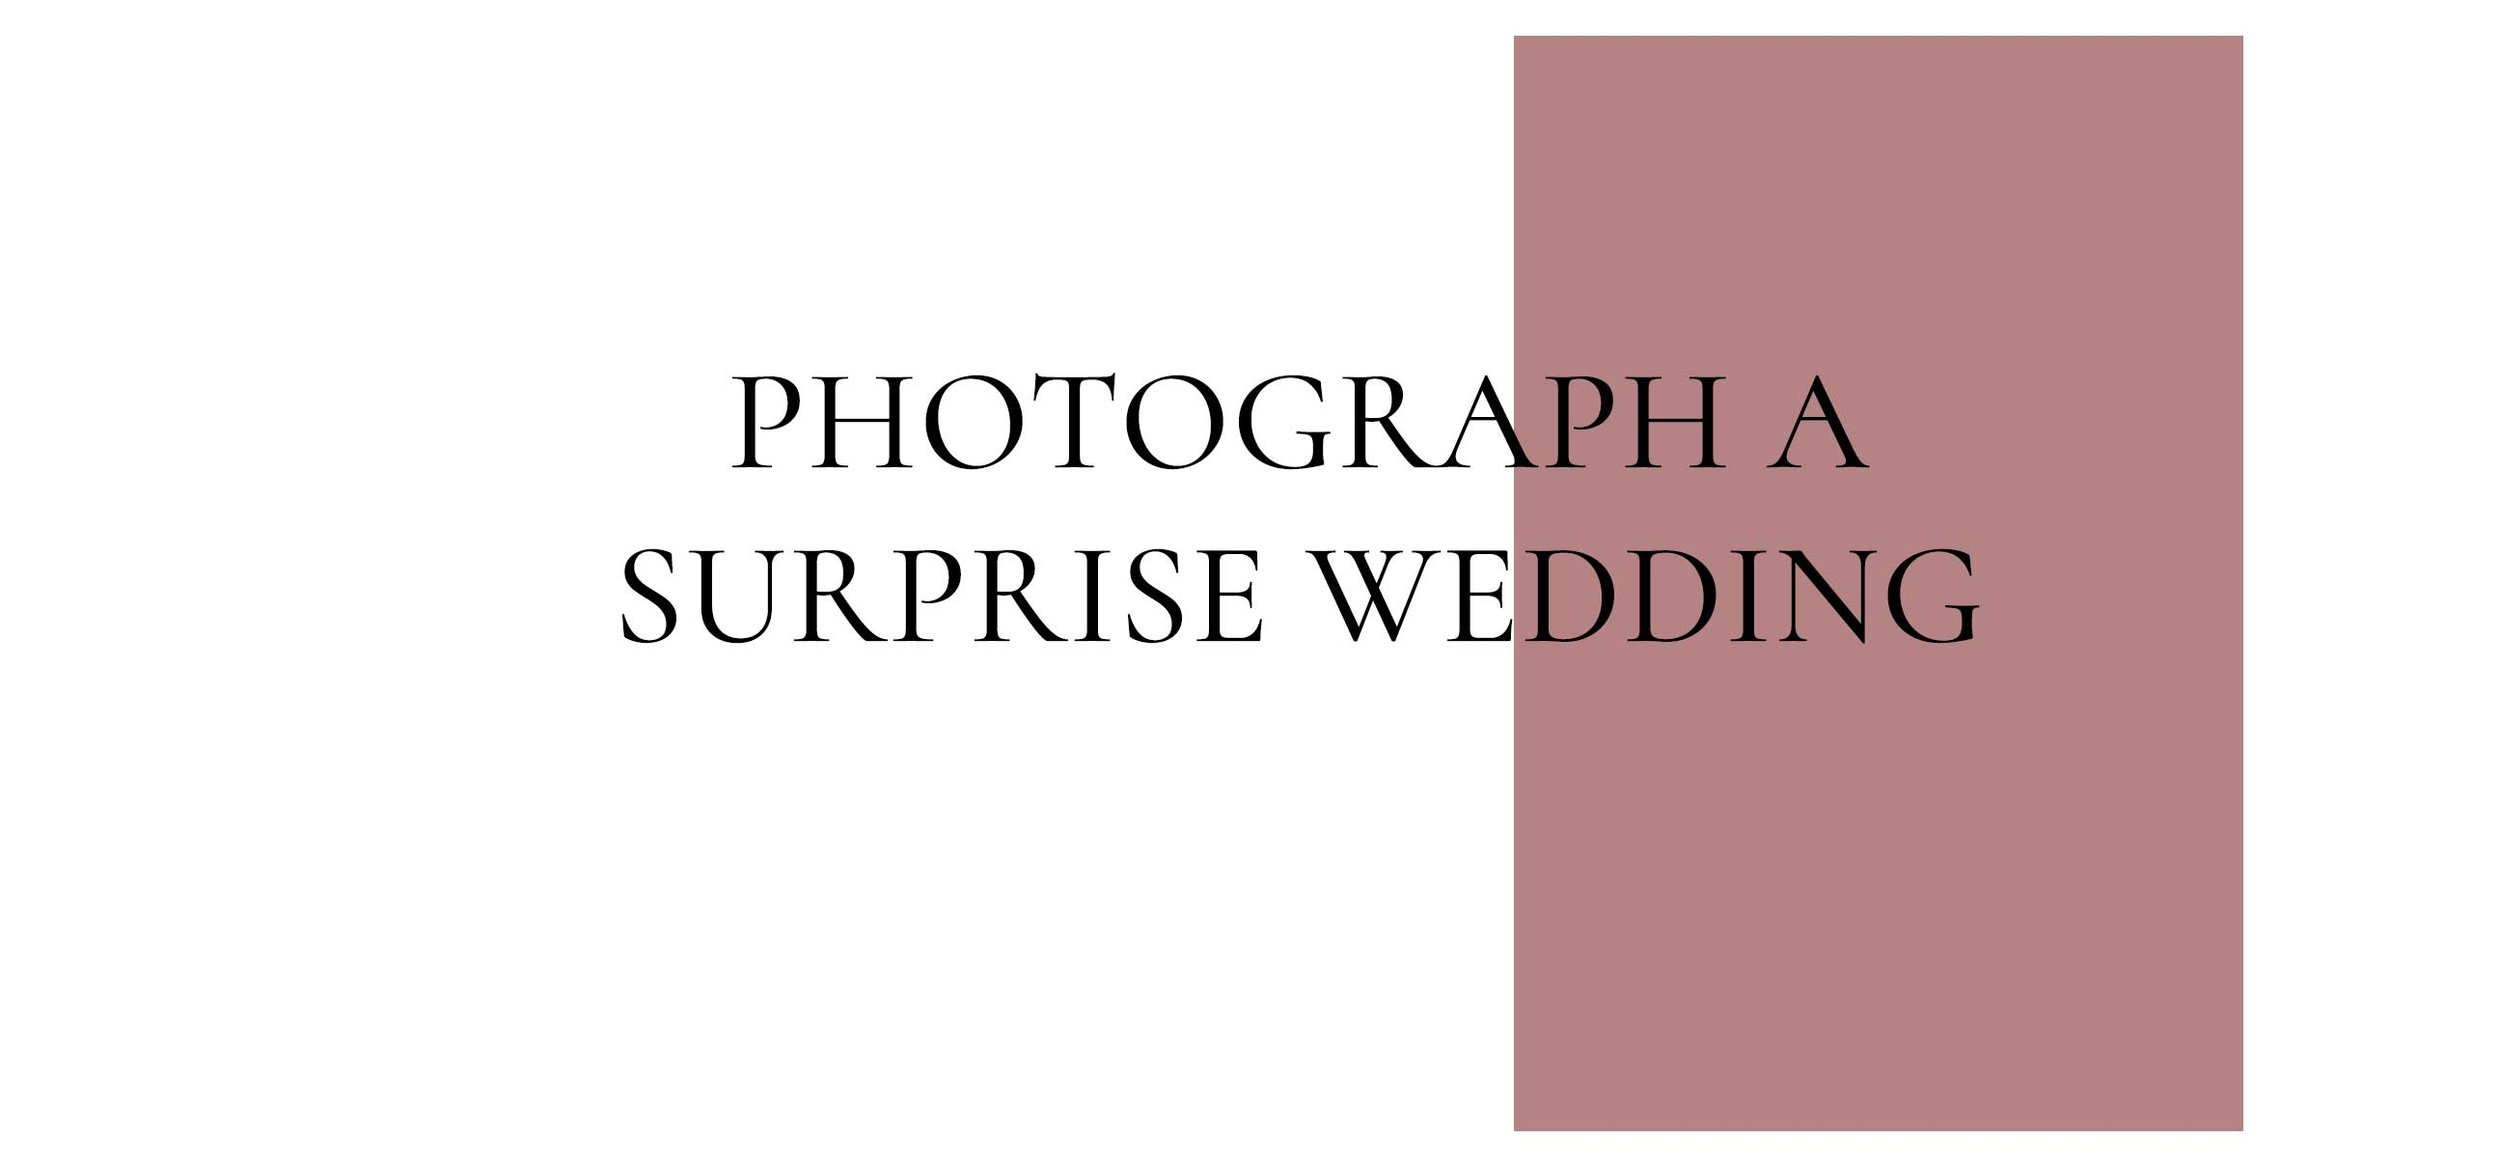 14-photograph-a-surprise-wedding.jpg